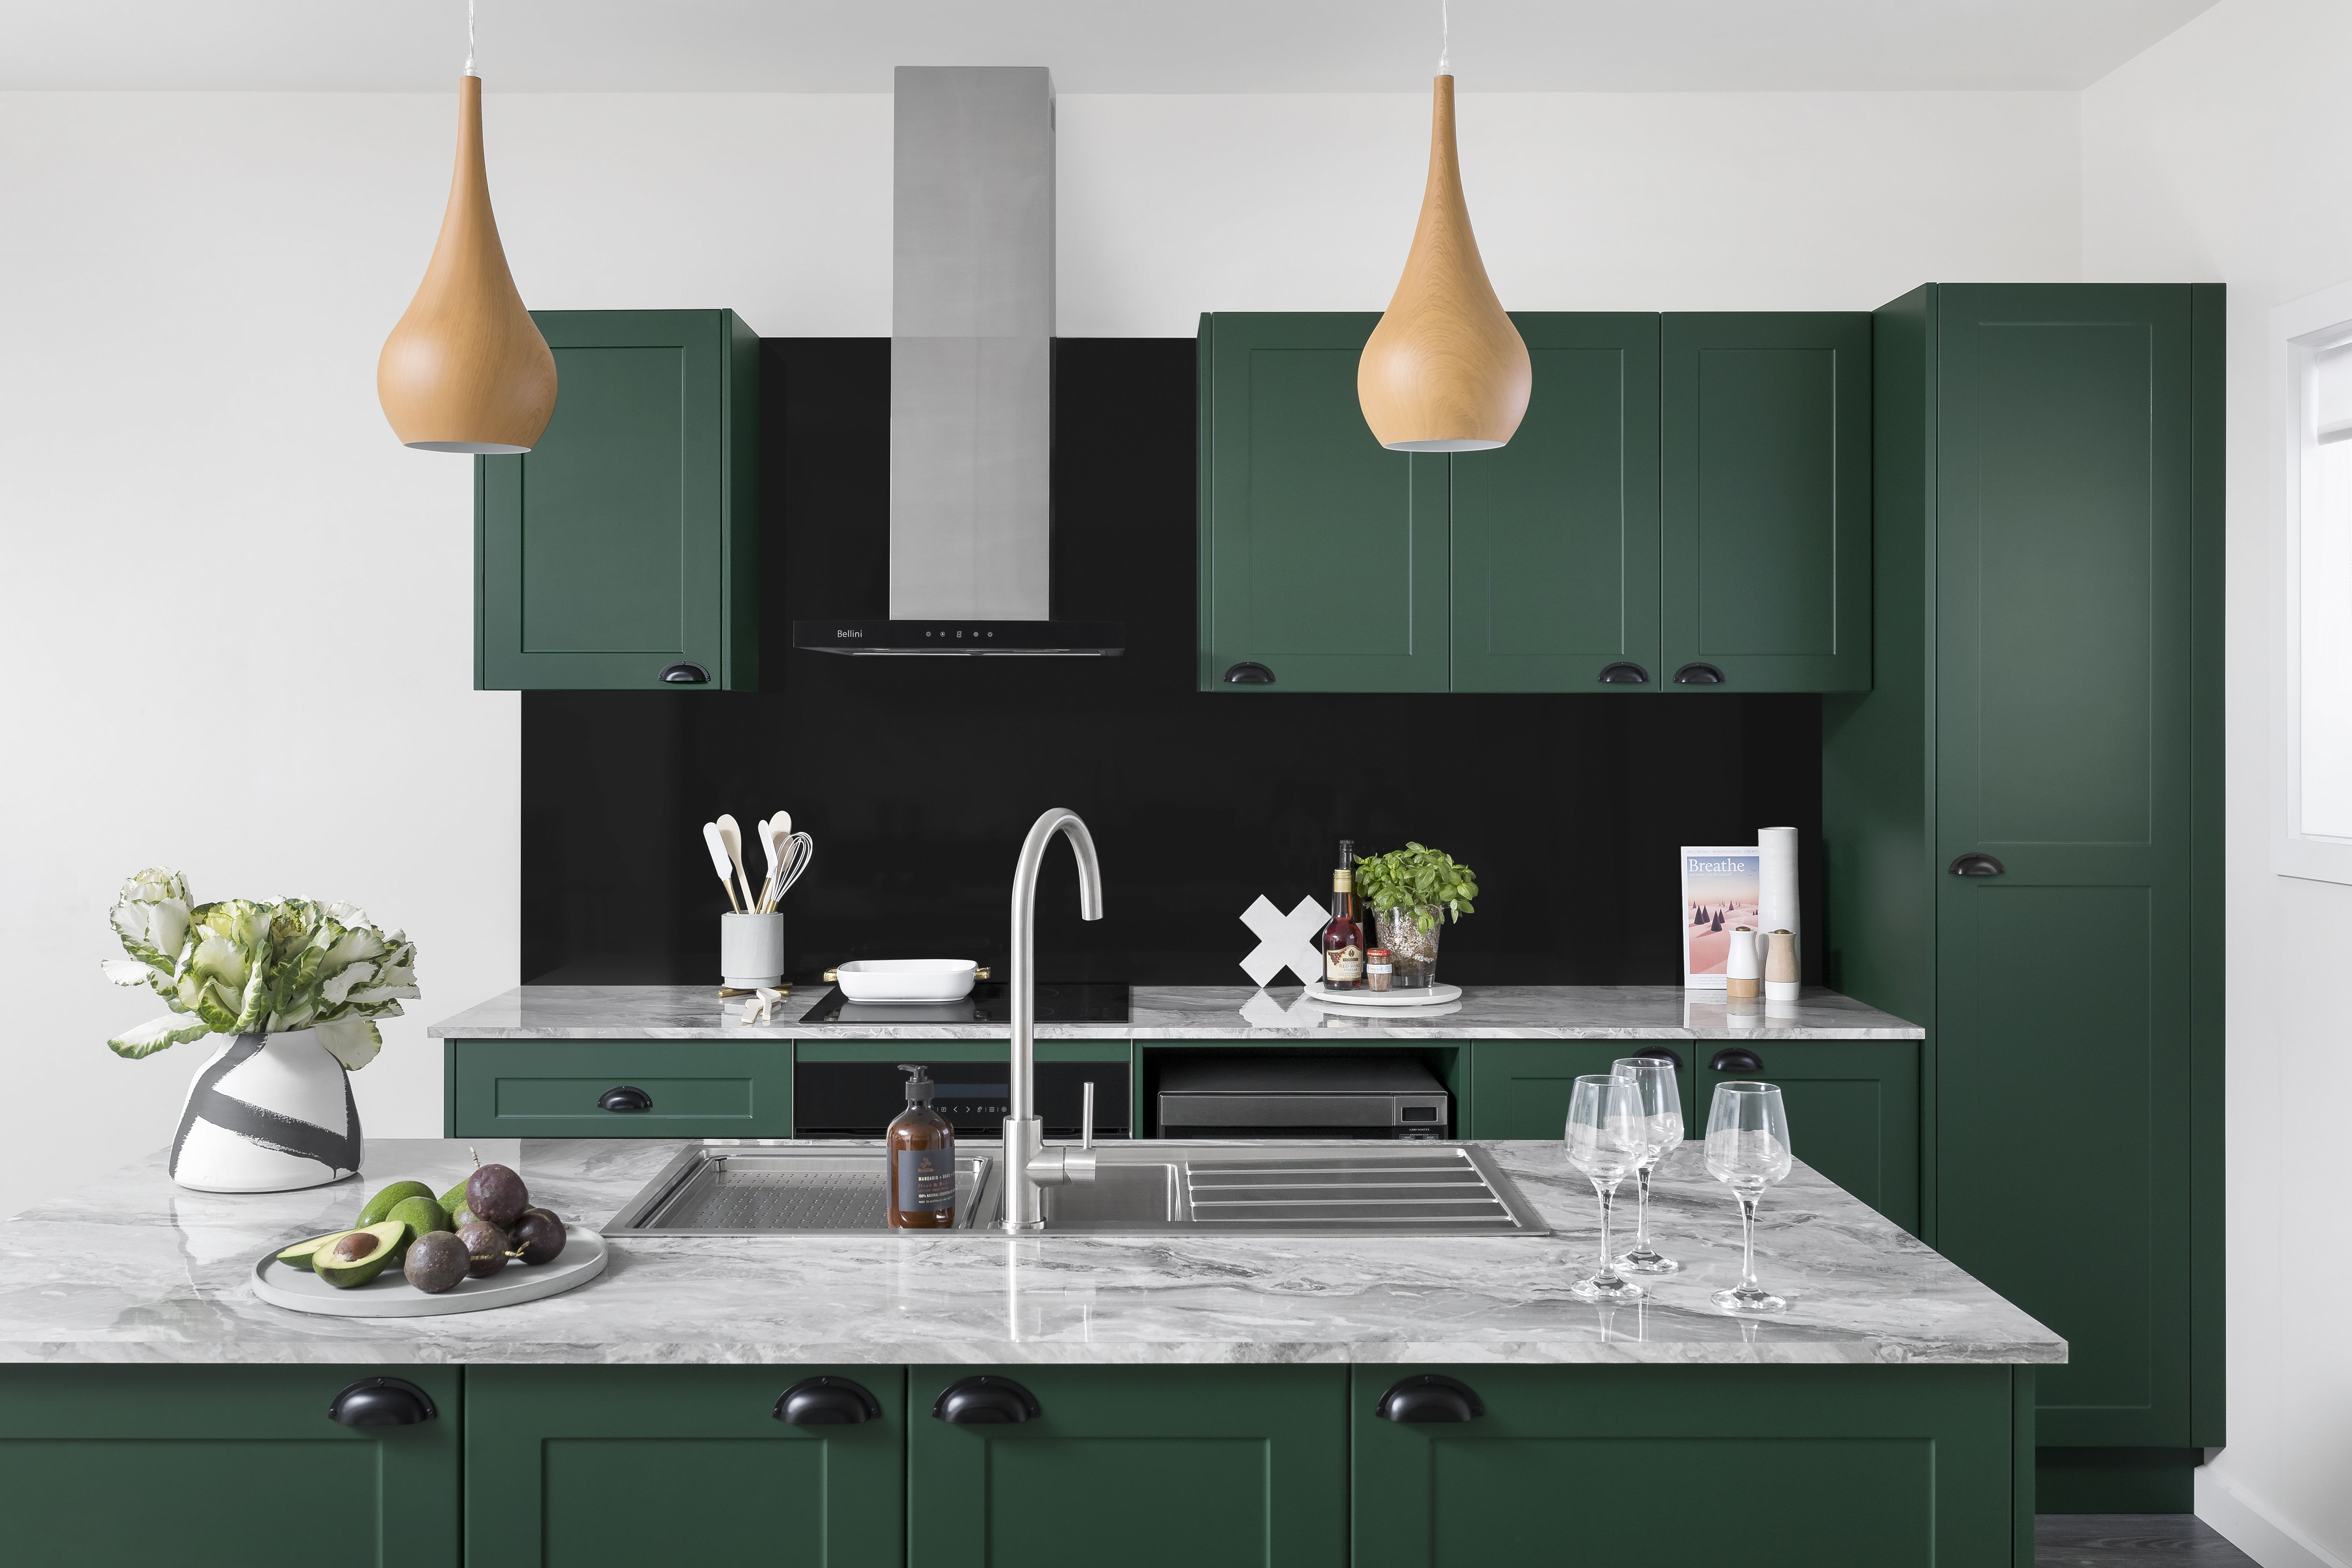 Kaboodle Kitchen with green and cup handles.